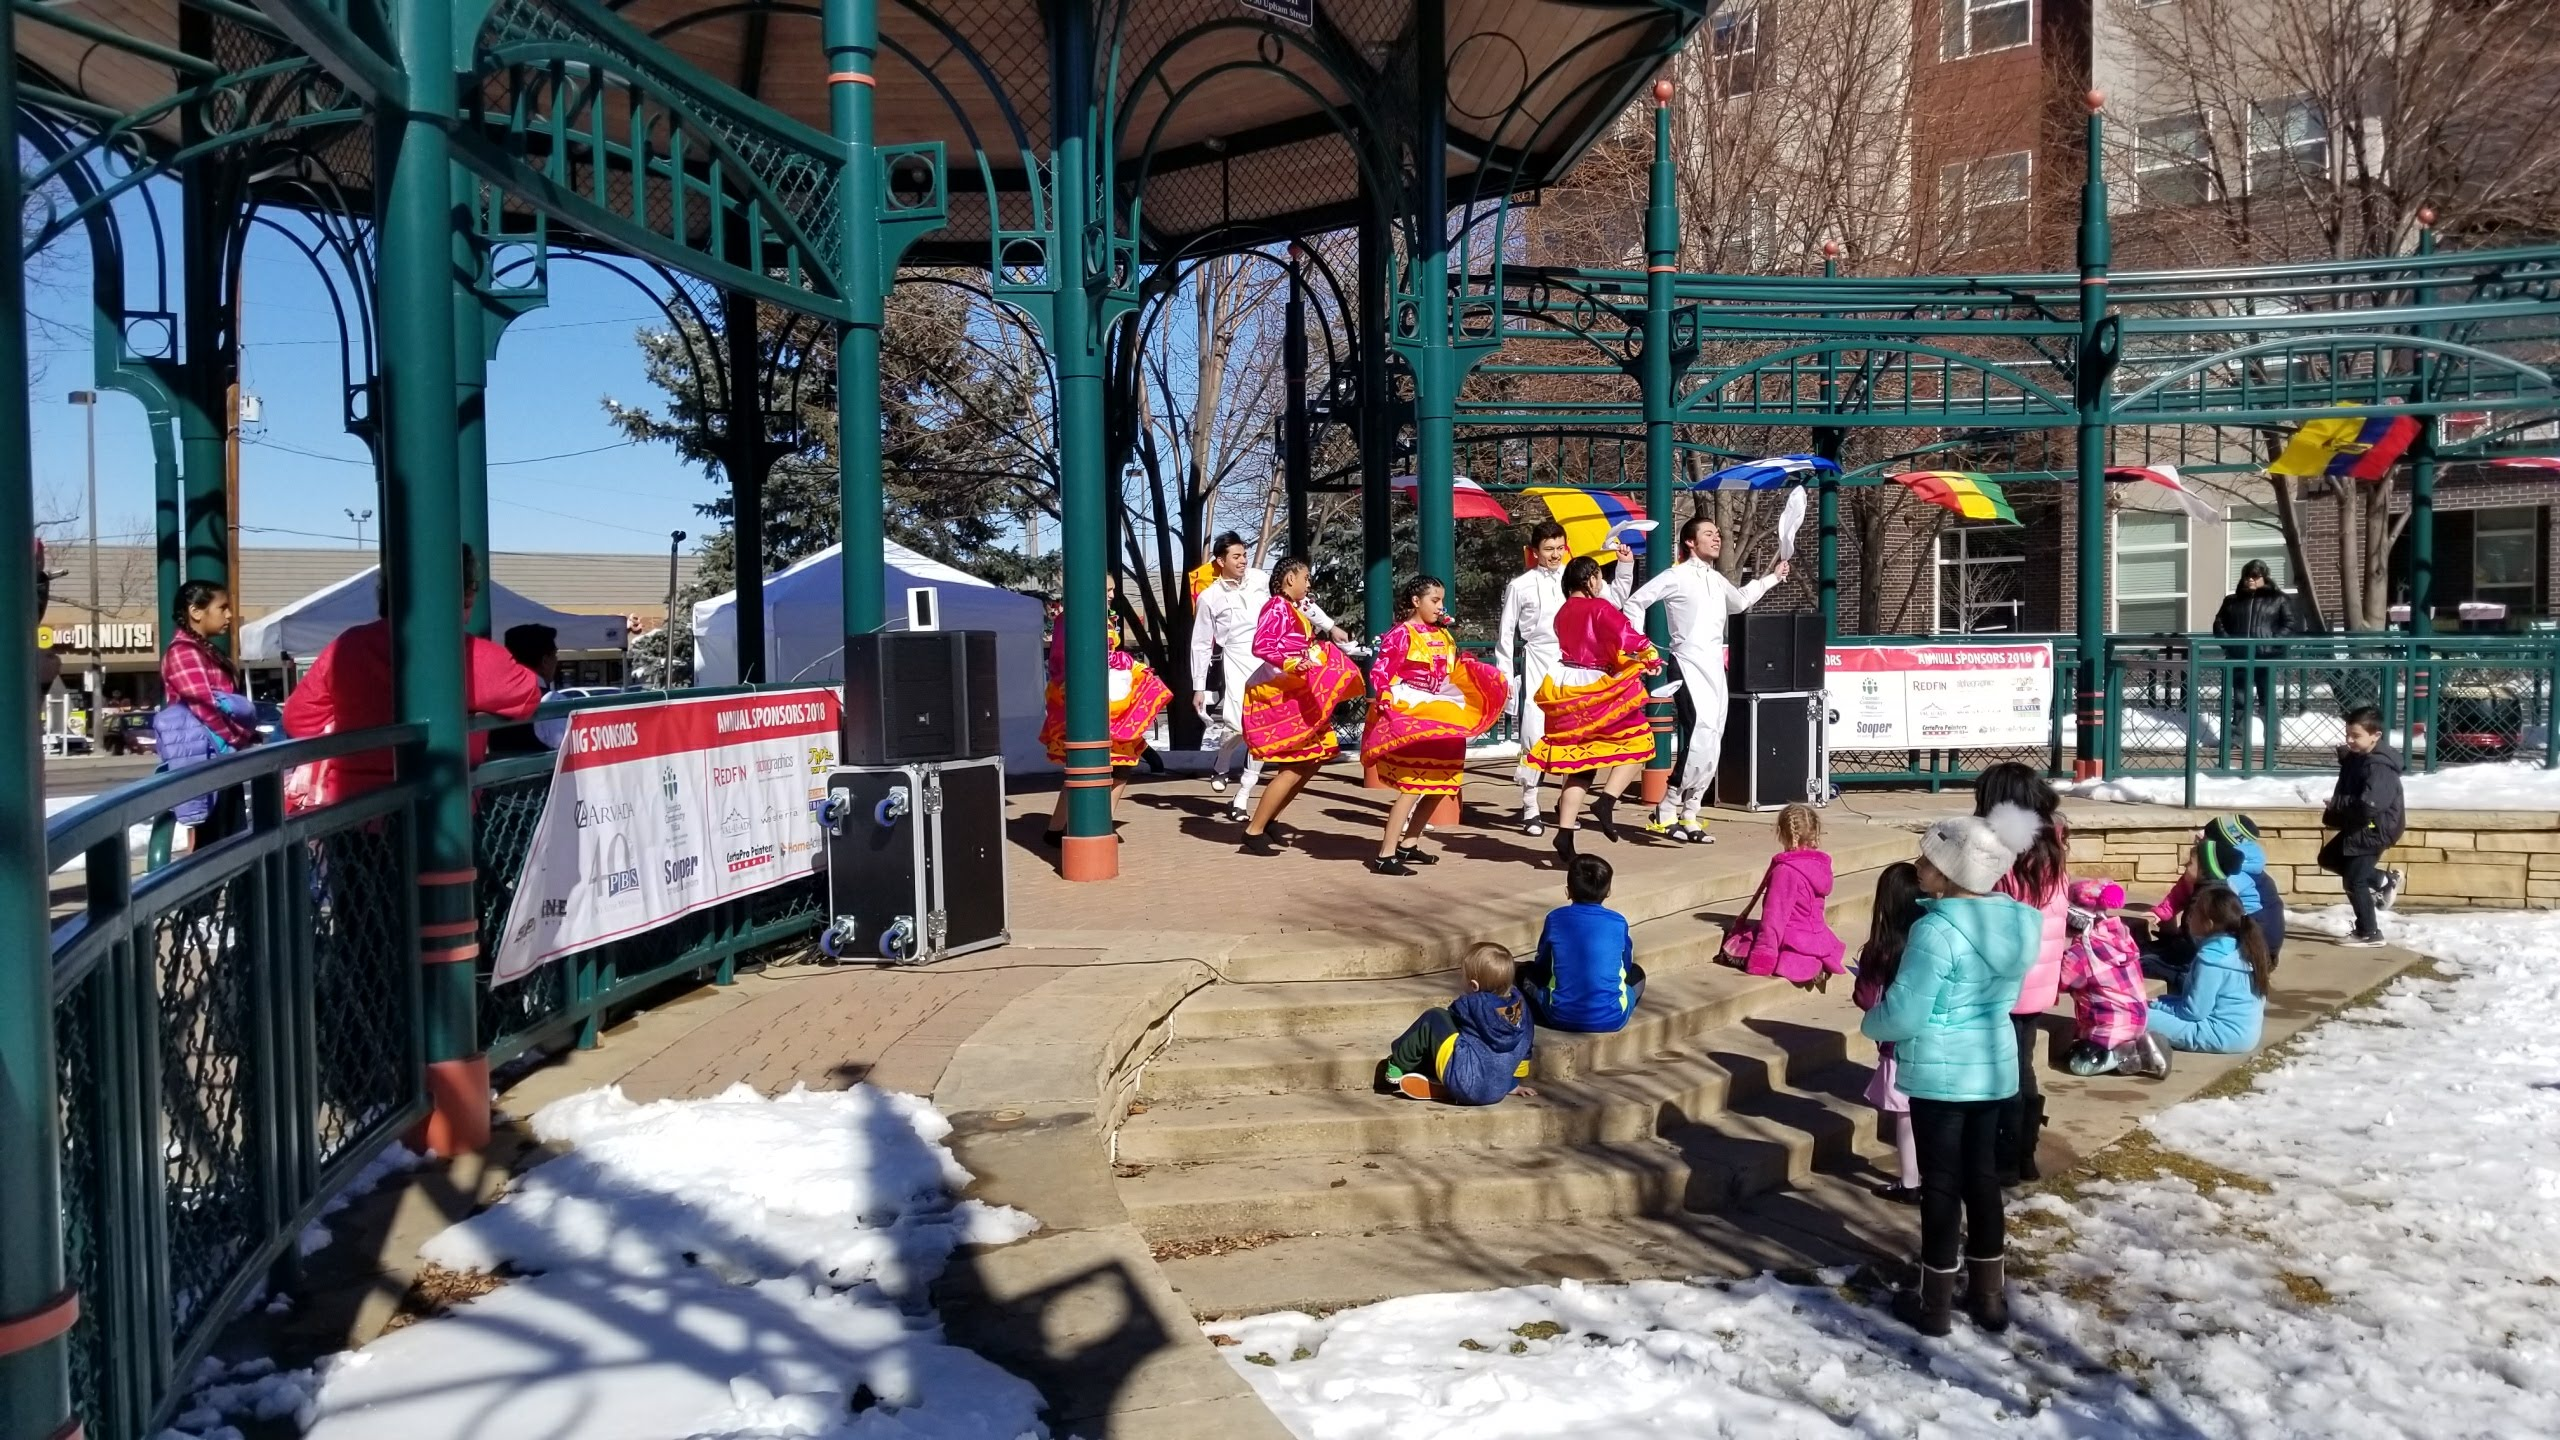 Taking Care of Your Health in Winter | By Carol Cheung, Arvada Festivals Commission